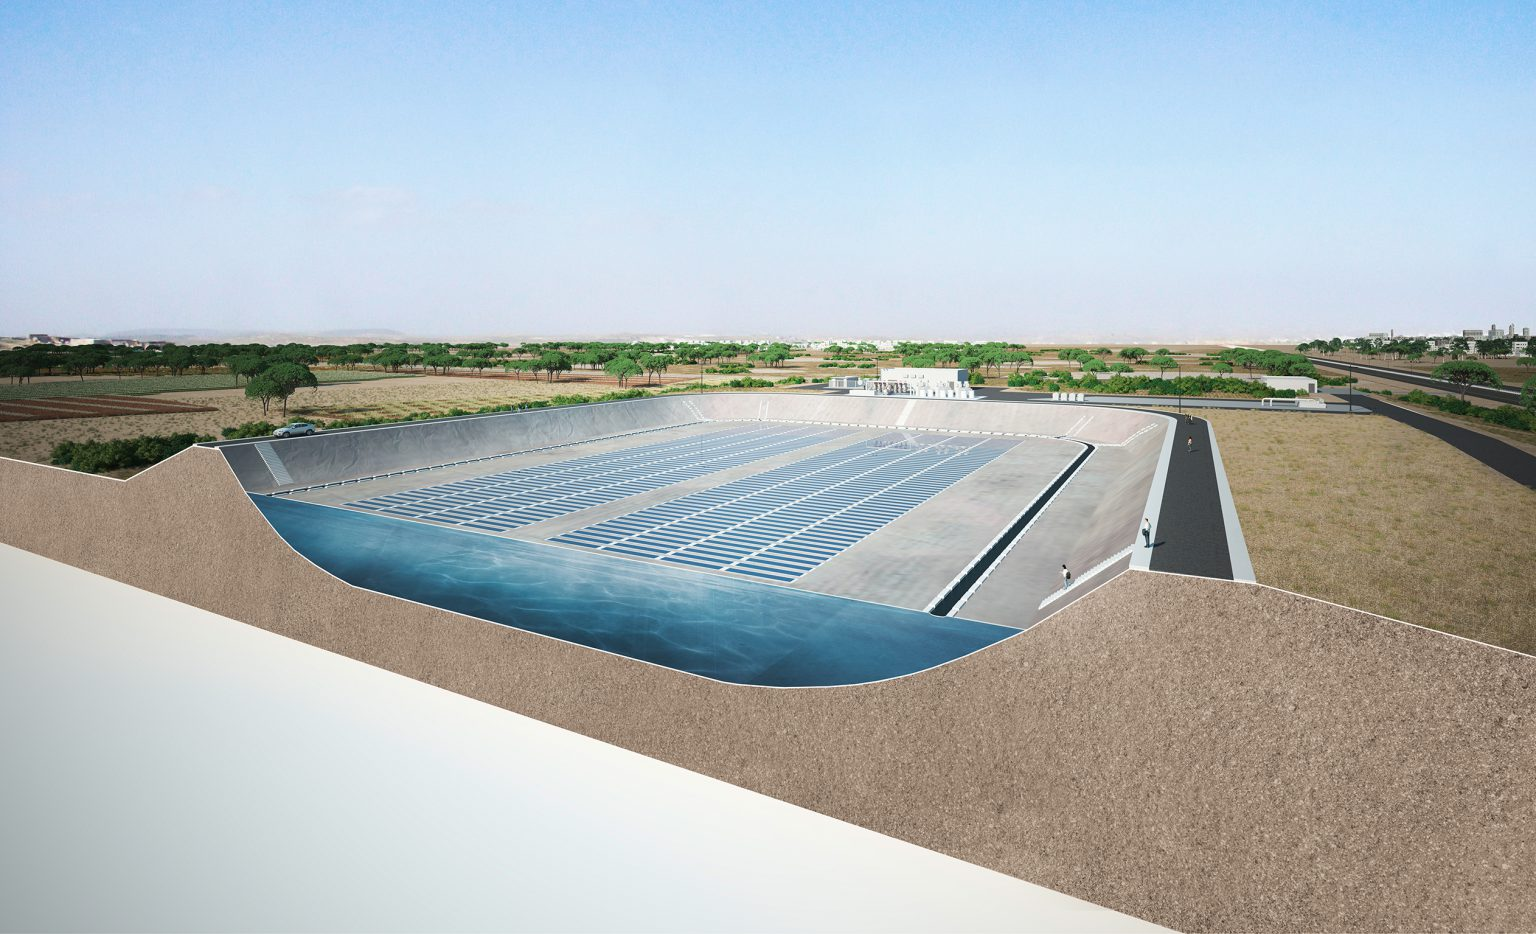 New technology prevents evaporation and generates energy